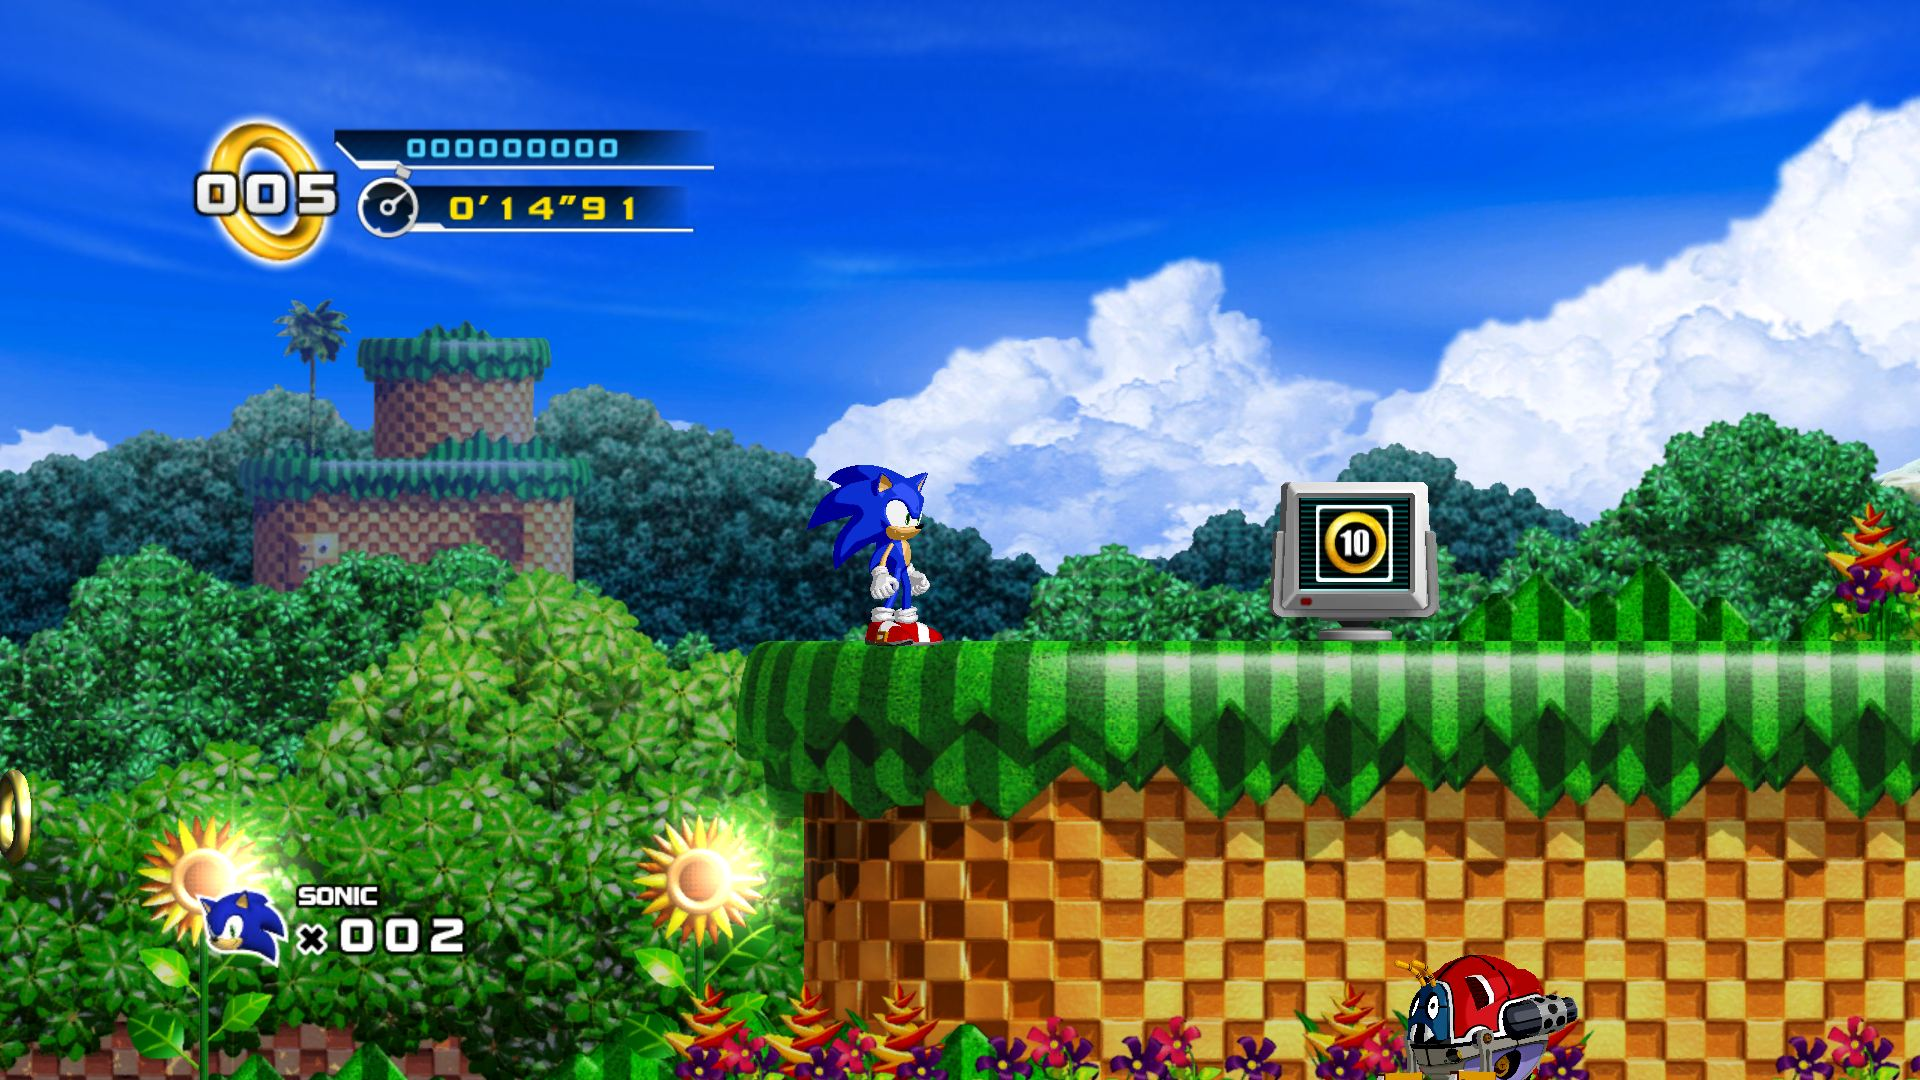 Sonic The Hedgehog 4: Episode 1: Erste Bilder zu Sonic The Hedgehog 4